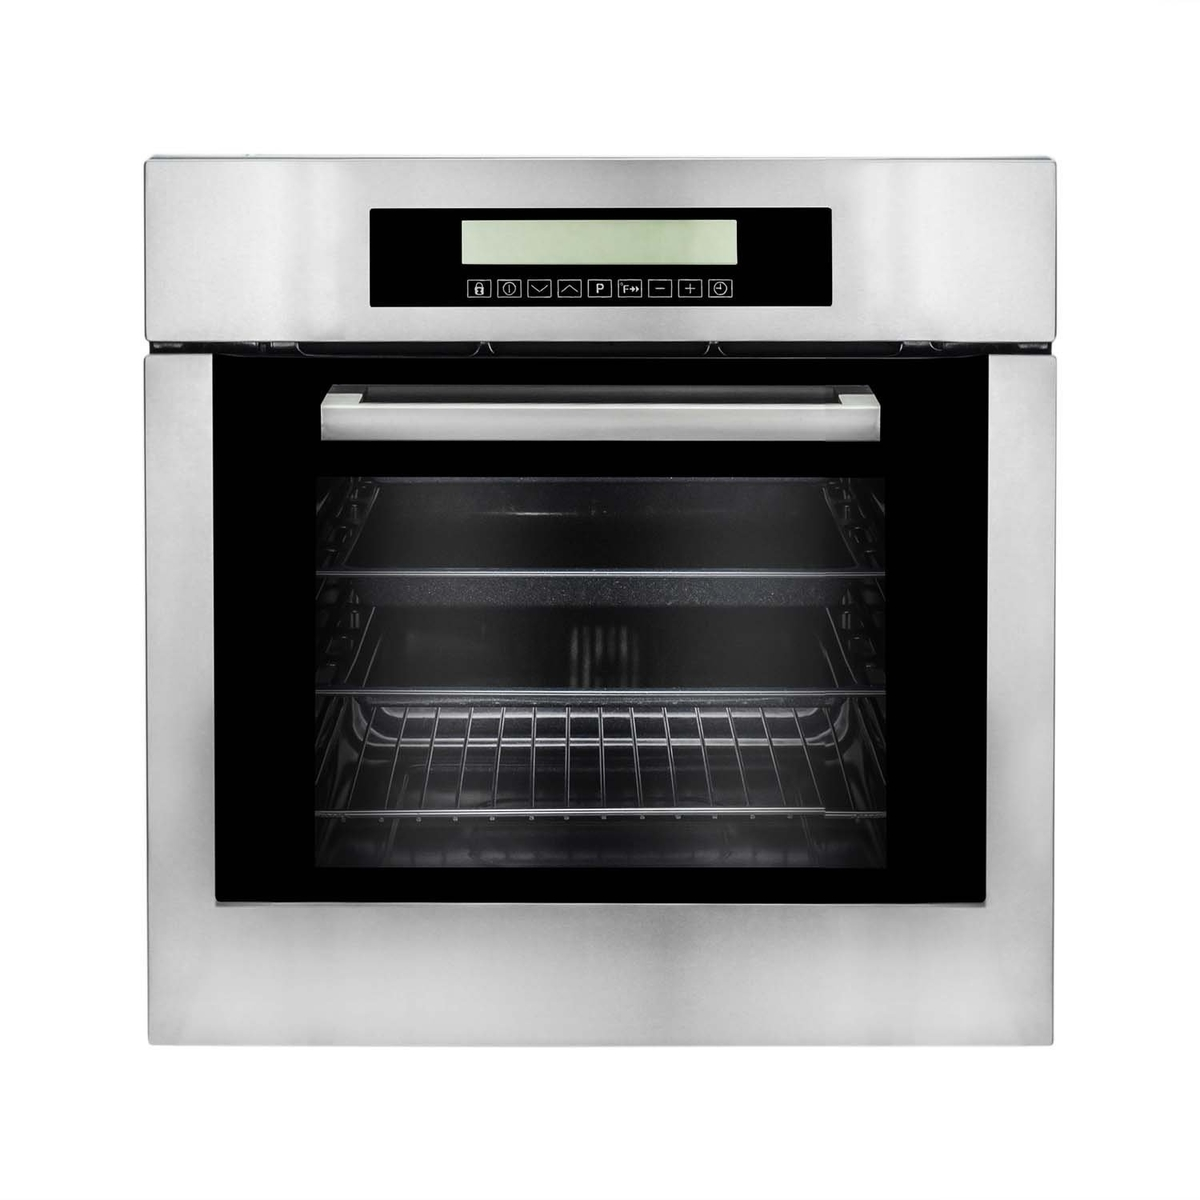 beko built self and p supersize cleaning function toaster in oven single with led electric